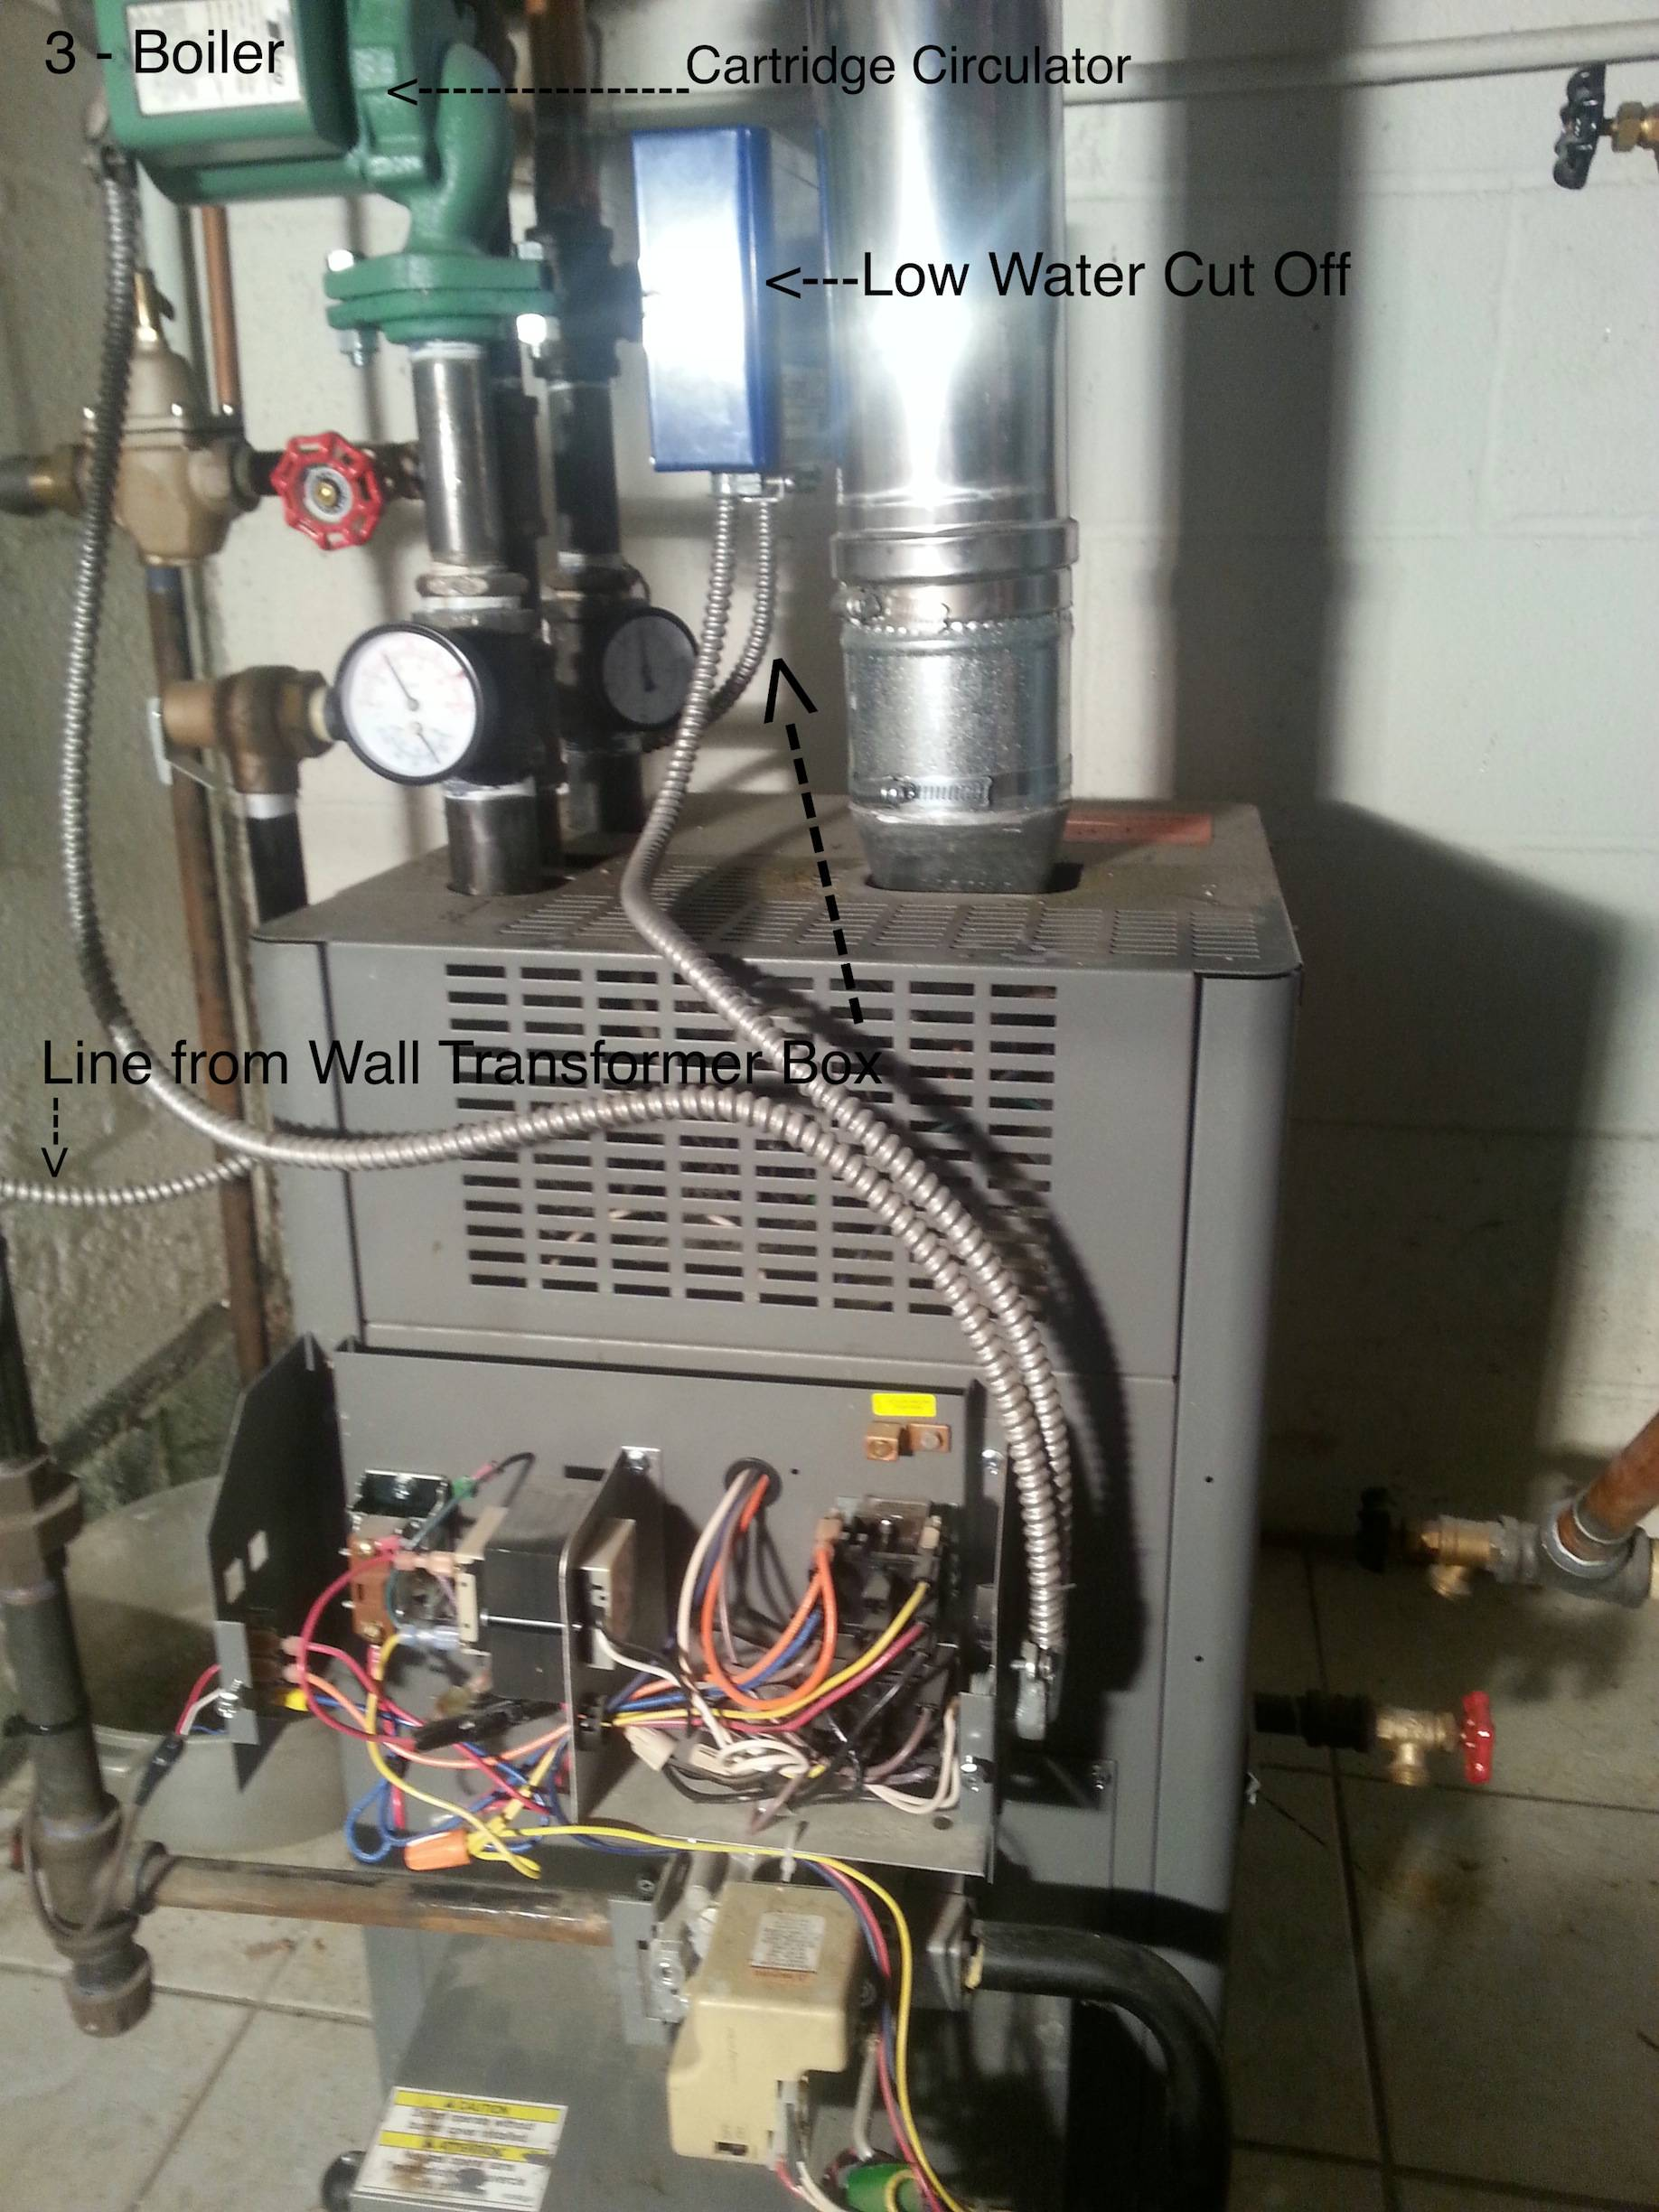 honeywell humidifier wiring diagram 1999 ford super duty trailer boiler - where do i connect my c wire from thermostat when there are two transformers? home ...